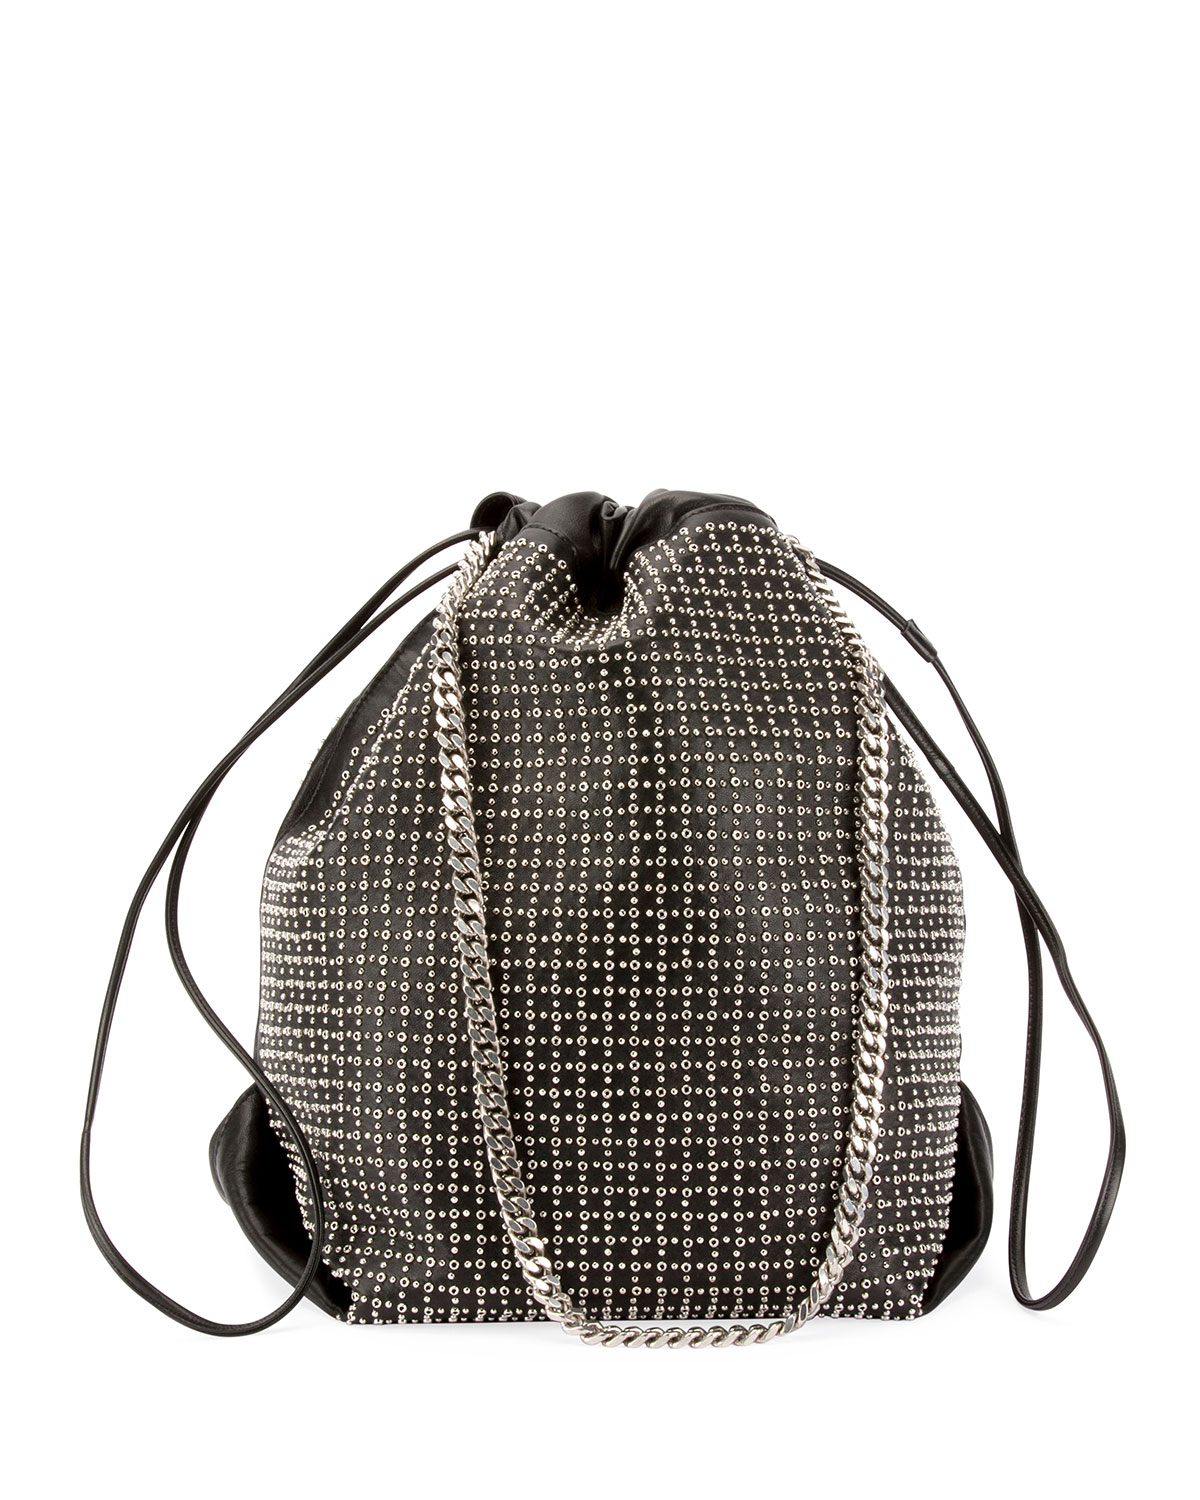 Saint Laurent Teddy Eyelet Studded Leather Drawstring Bucket Bag ... bb14a80c00f6b